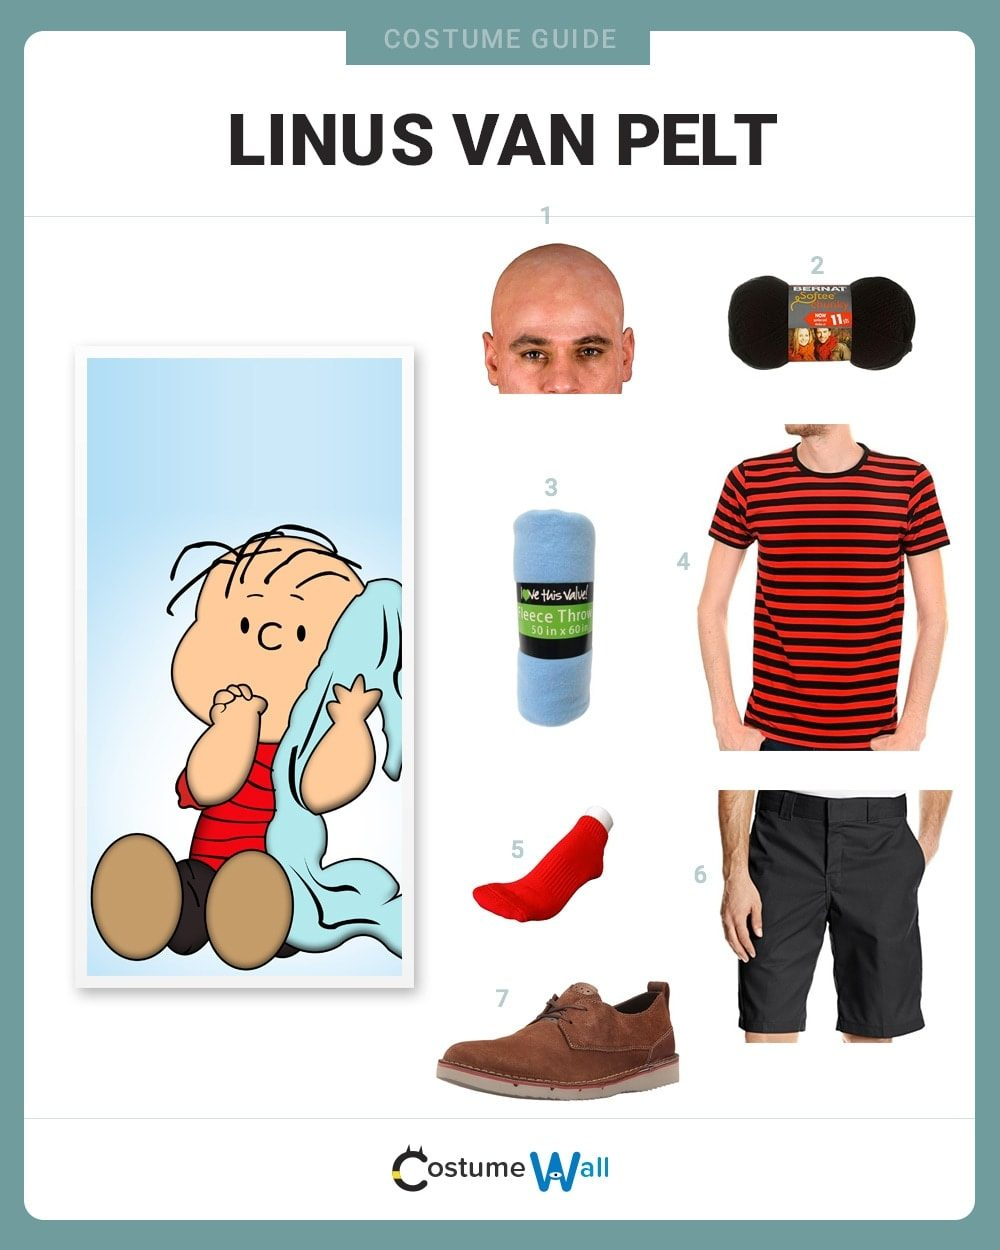 Best Linus van Pelt Costume Guide  sc 1 st  Costume Wall & Dress Like Linus van Pelt Costume | Halloween and Cosplay Guides